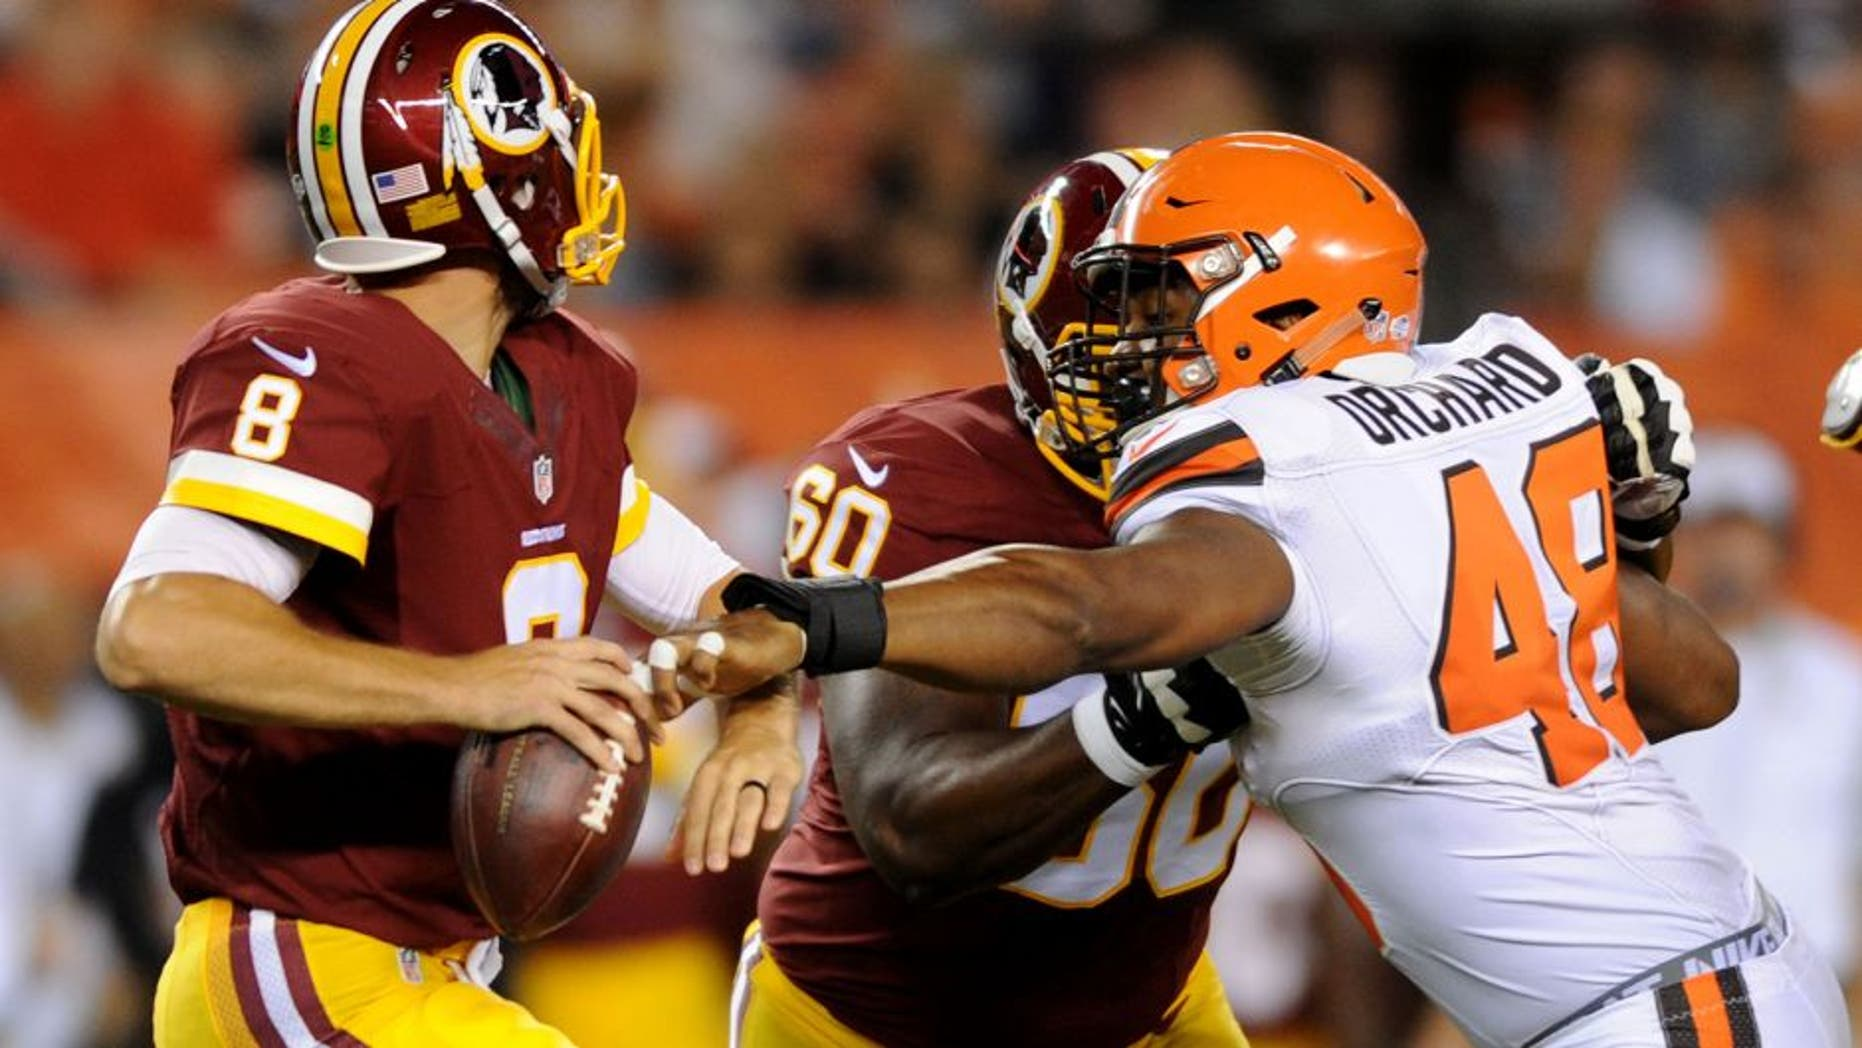 Aug 13, 2015; Cleveland, OH, USA; Cleveland Browns linebacker Nate Orchard (48) gets a hand on Washington Redskins quarterback Kirk Cousins (8) as Washington Redskins tackle Willie Smith (60) blocks during the second quarter in a preseason NFL football game at FirstEnergy Stadium. Mandatory Credit: Ken Blaze-USA TODAY Sports